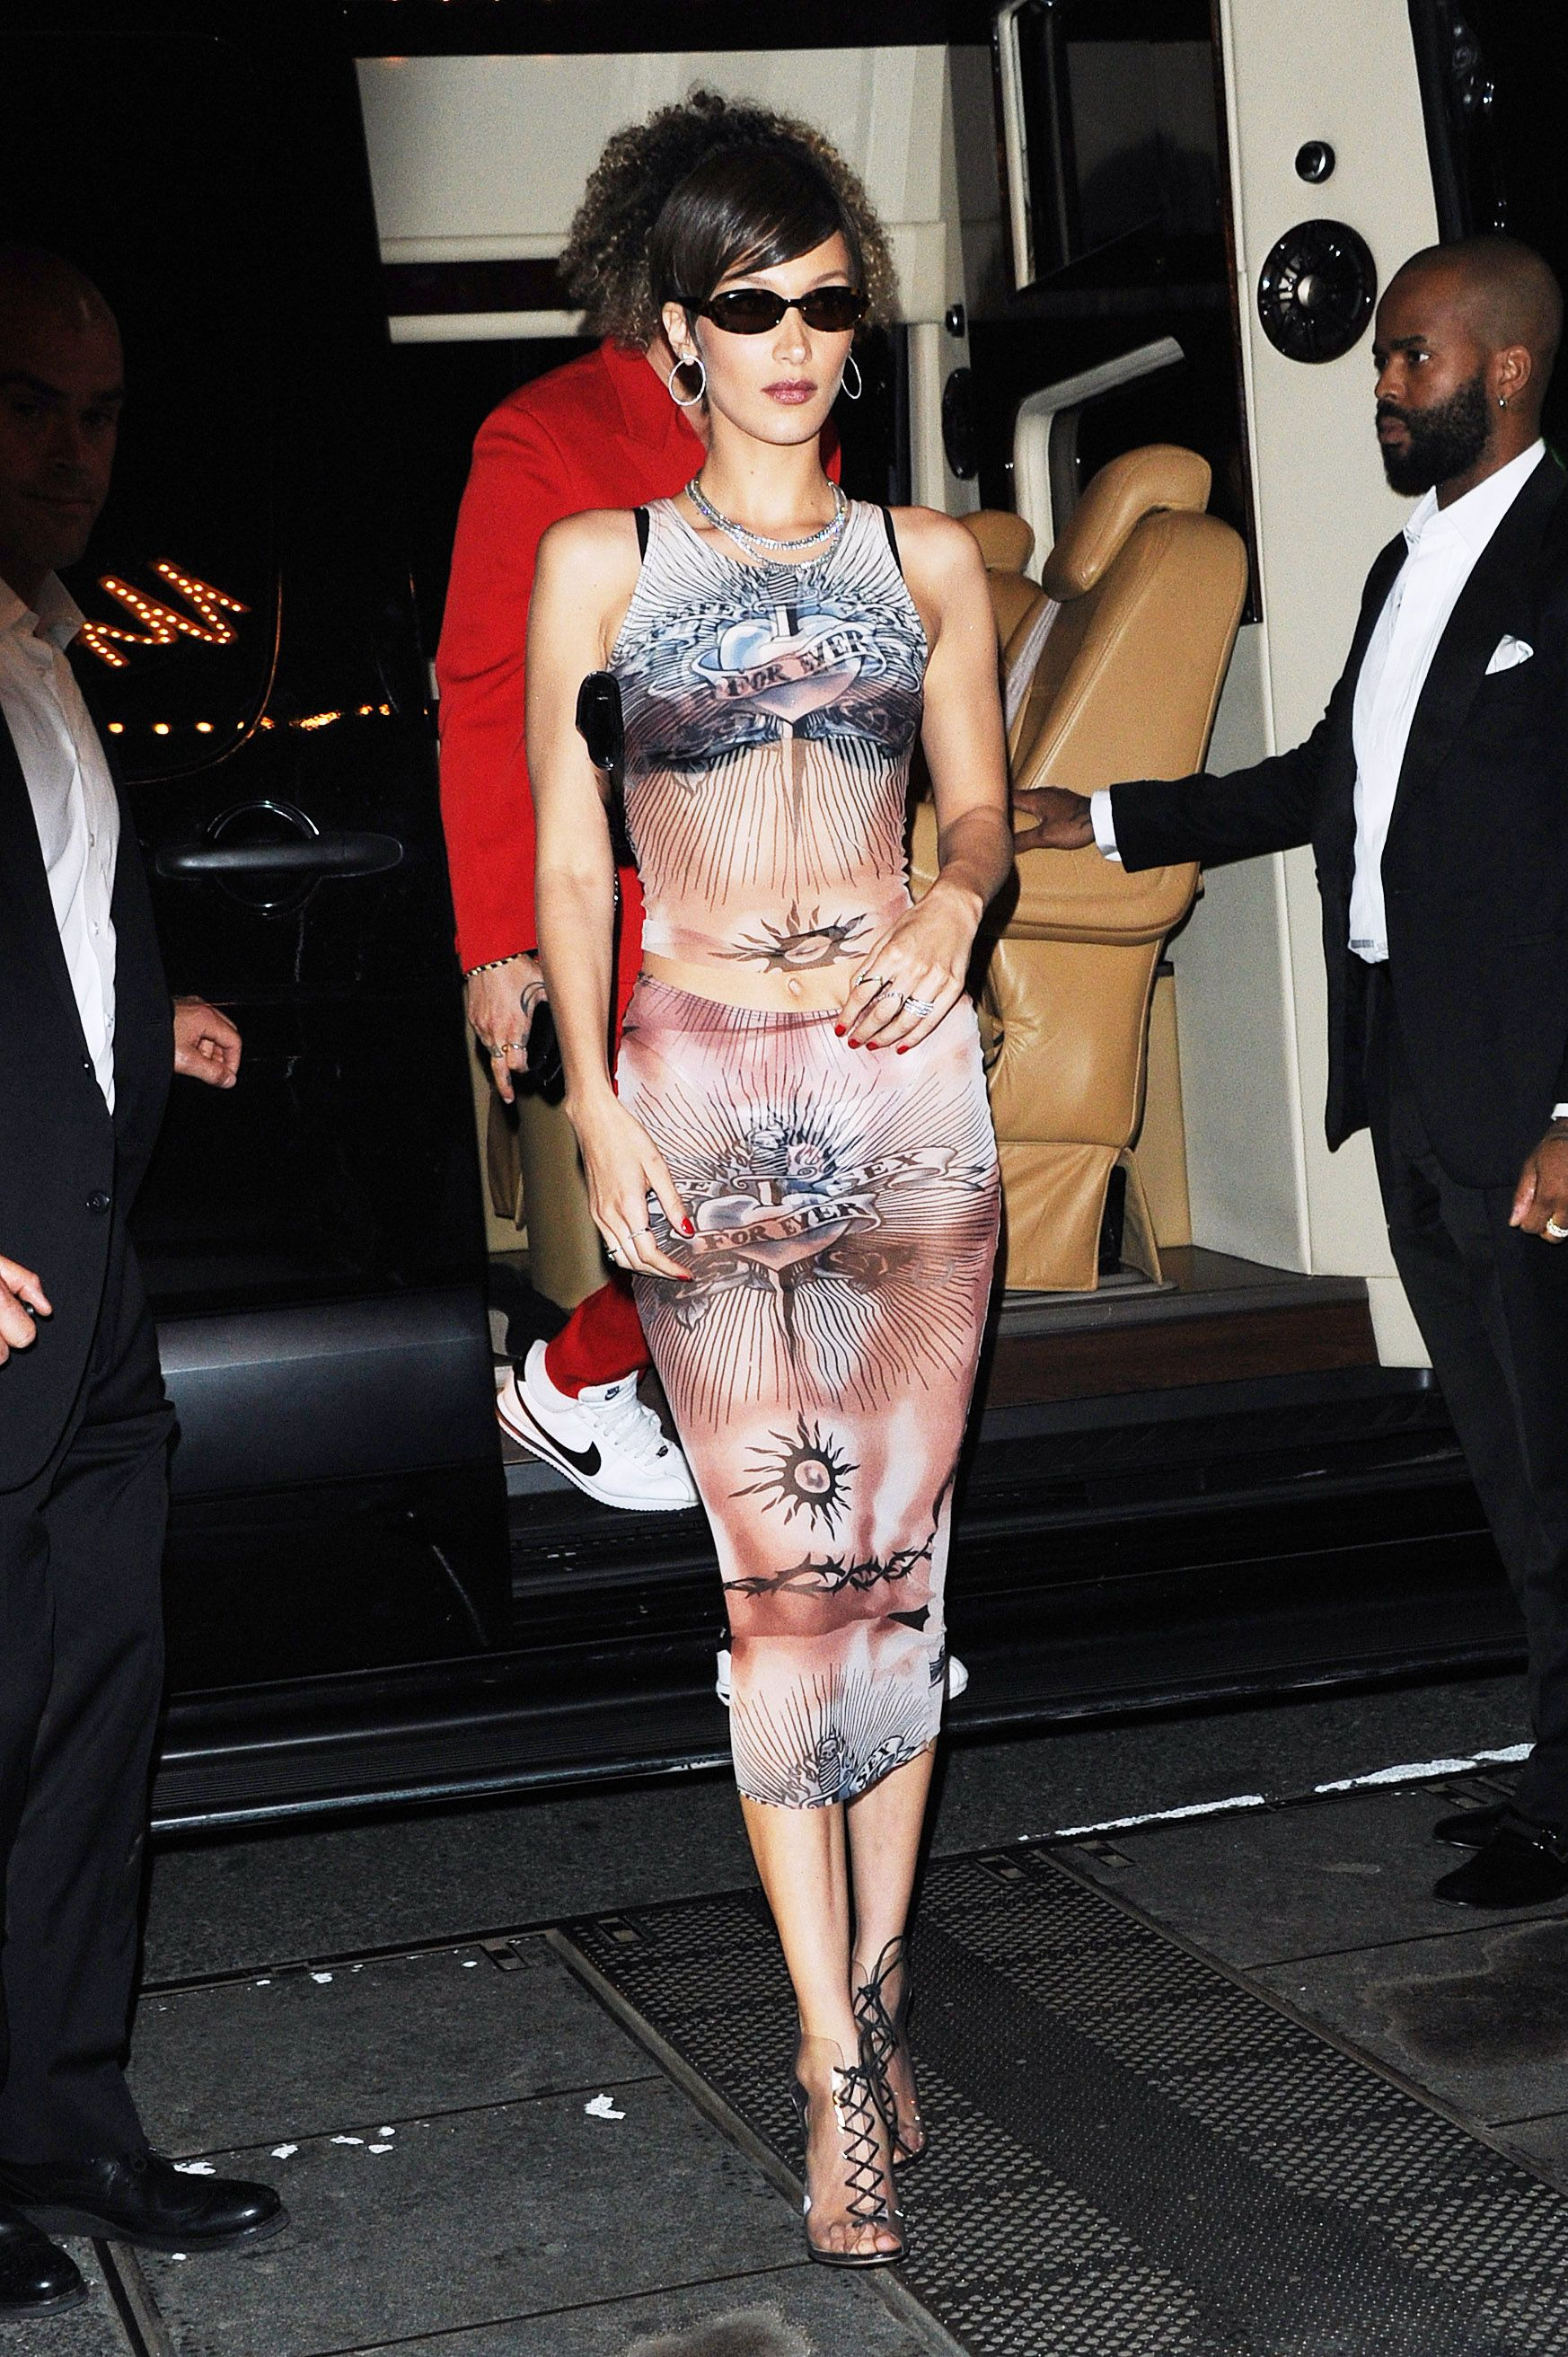 Bella Hadid The model kept it sheer at the after-party in a printed dress.